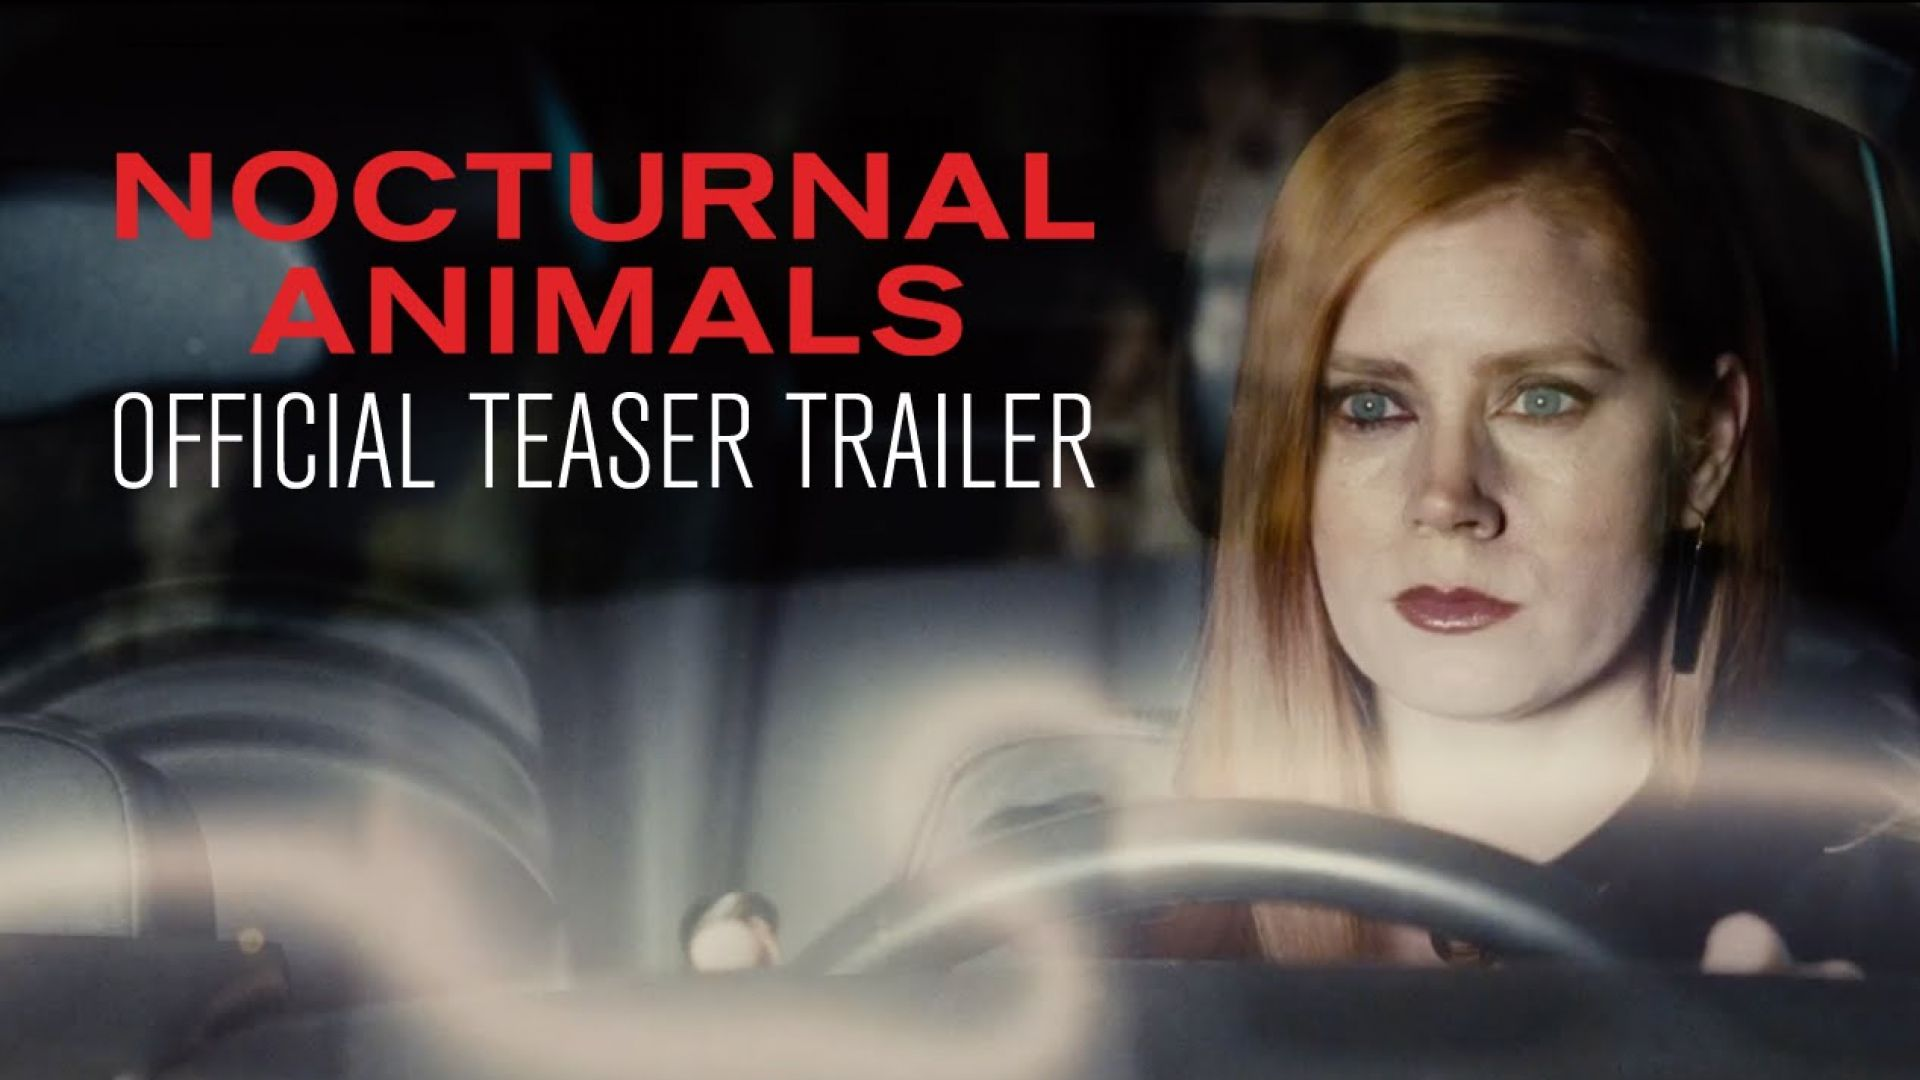 Here is Tom Ford's dark and intriguing 'Nocturnal Animals' t